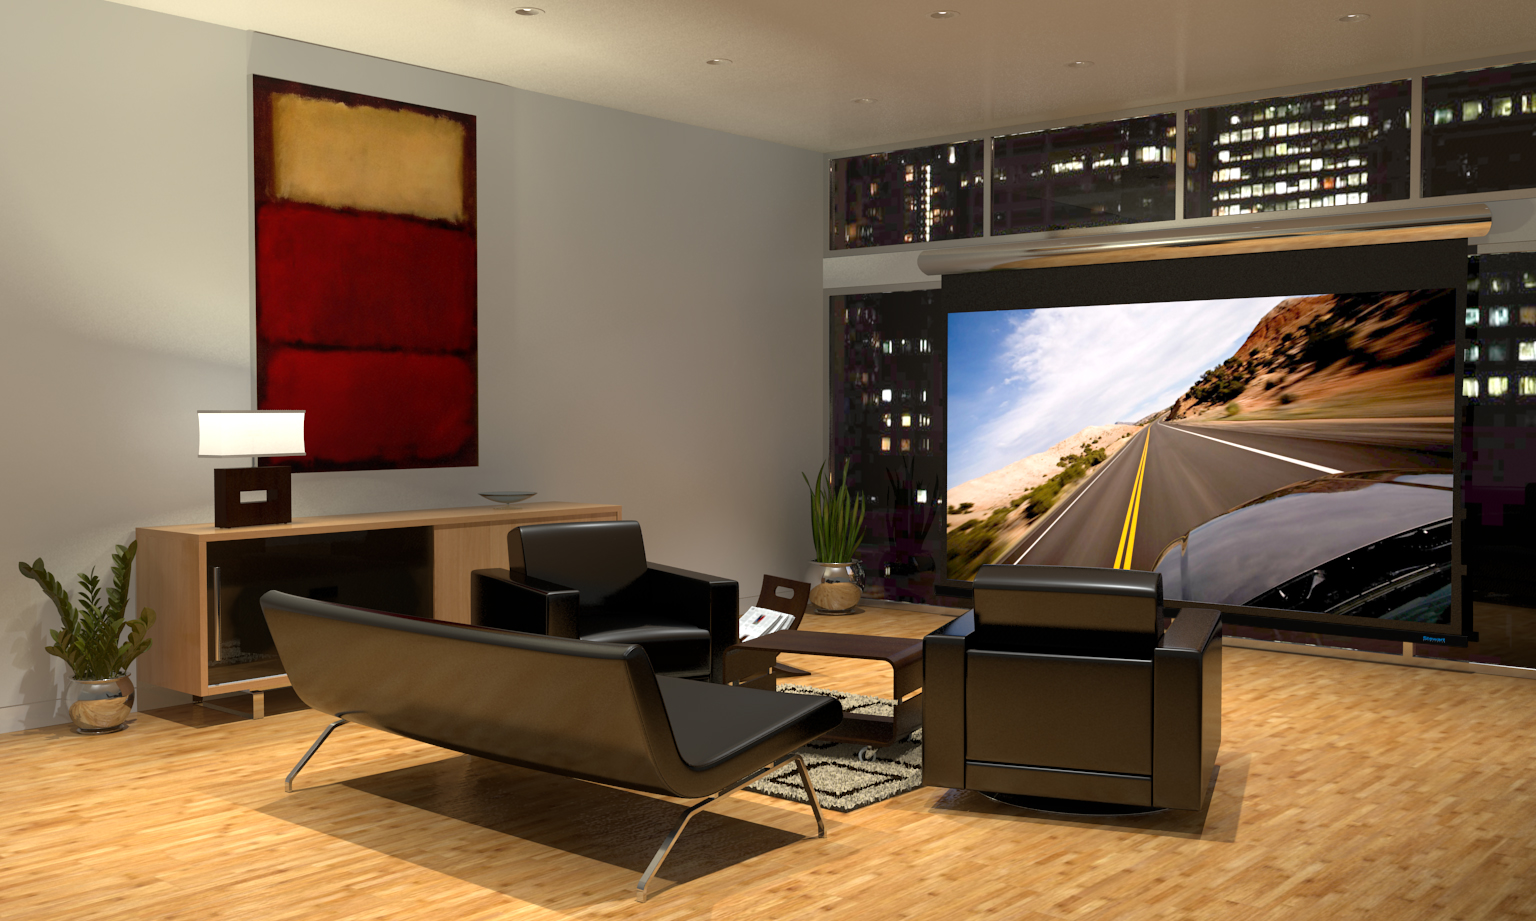 Stewart Filmscreen Announces Contemporary Cabaret Screen For Media Room Installations